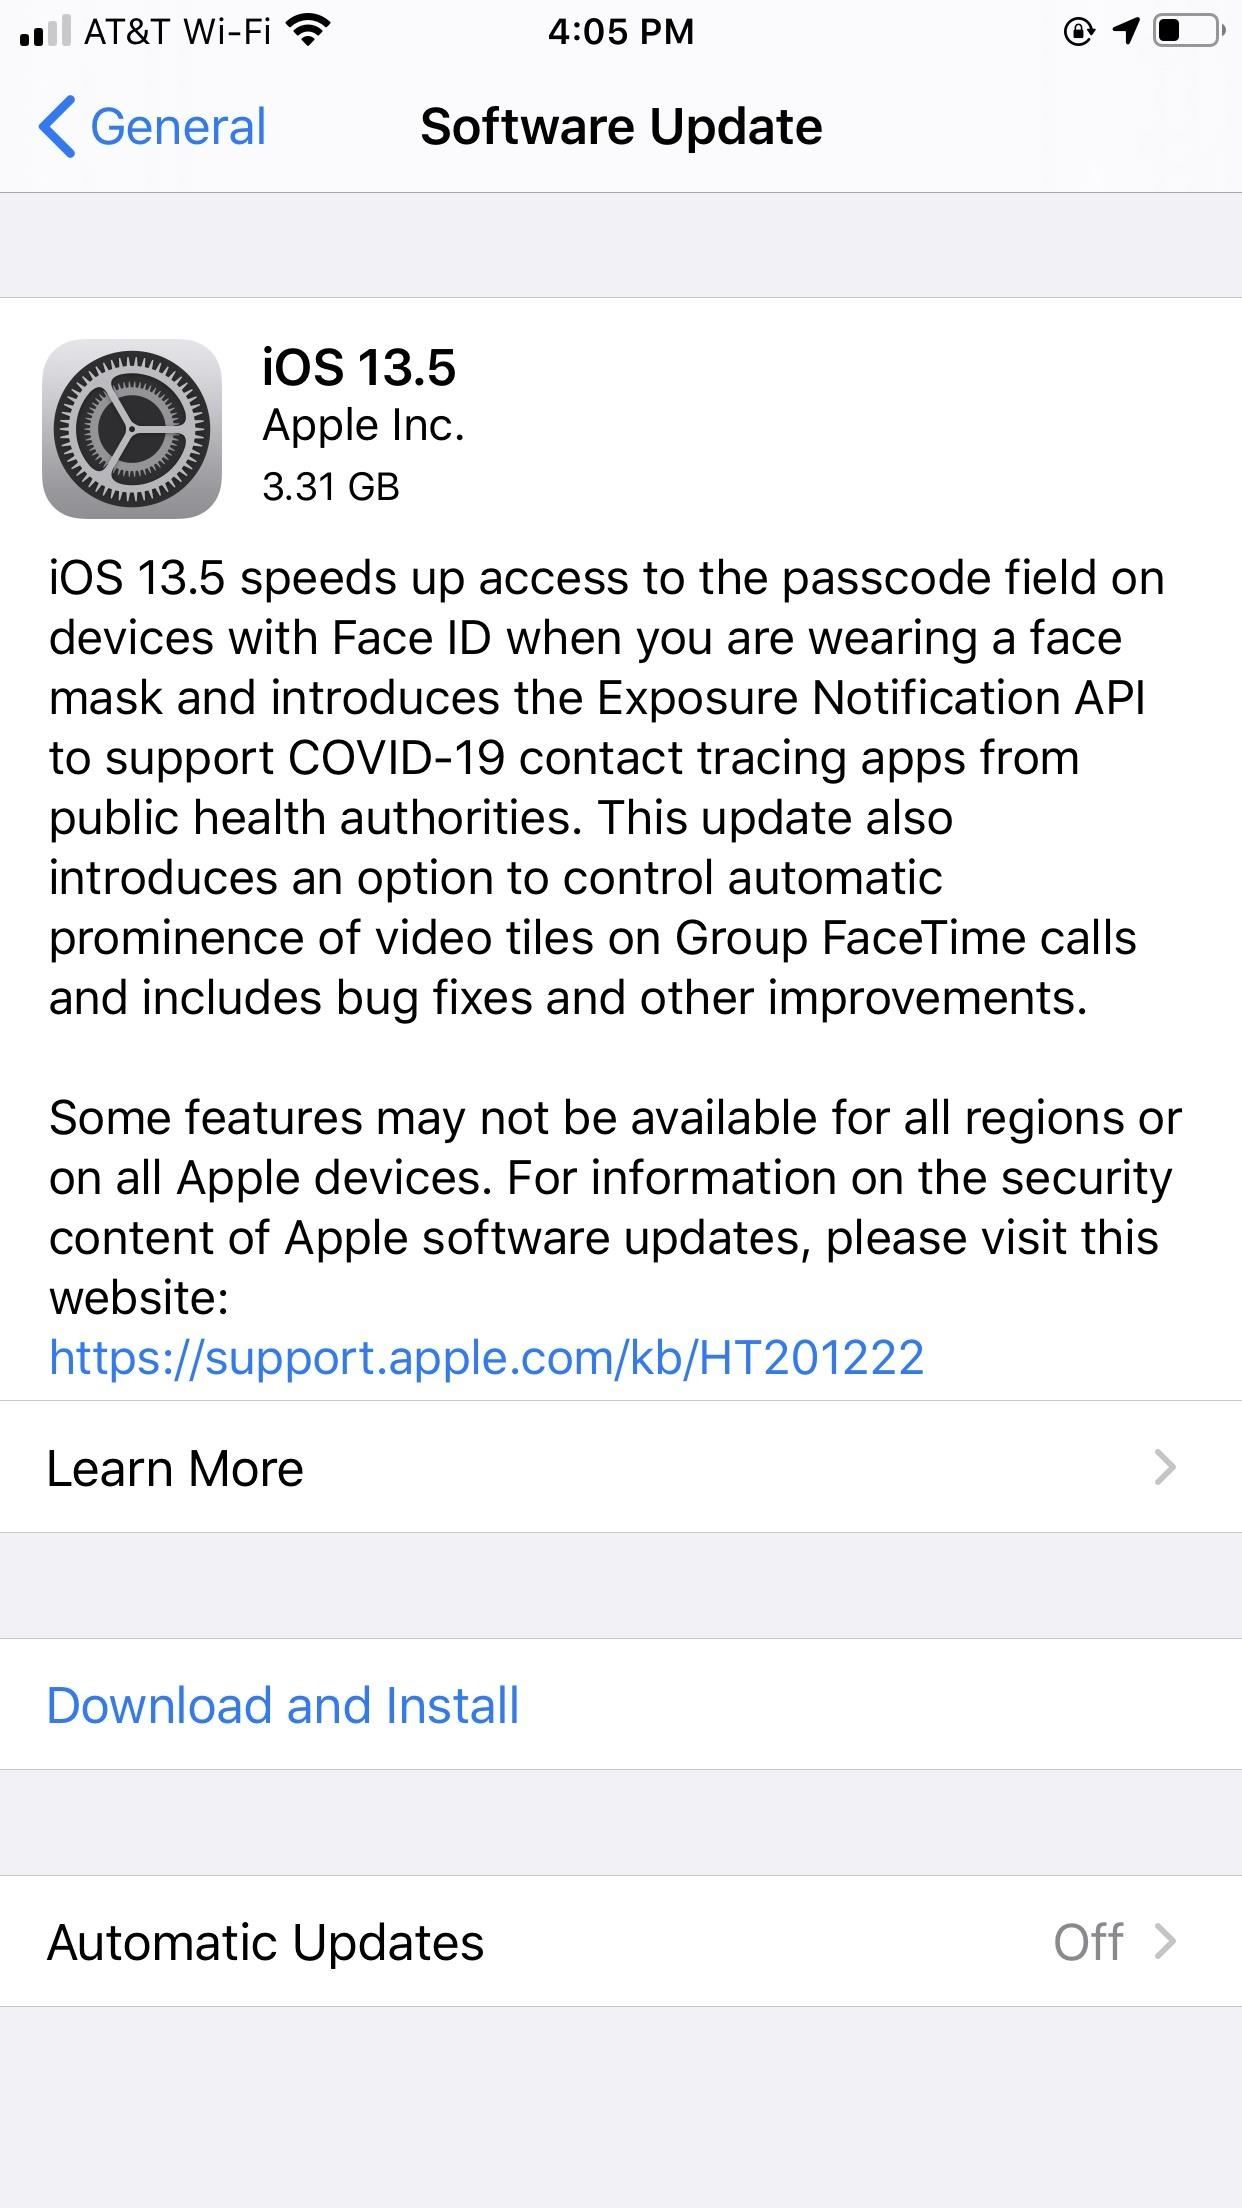 Apple Releases iOS 13.5 for Public Beta Testers, Includes Updates to Face ID, COVID-19 Exposure Notifications, & More